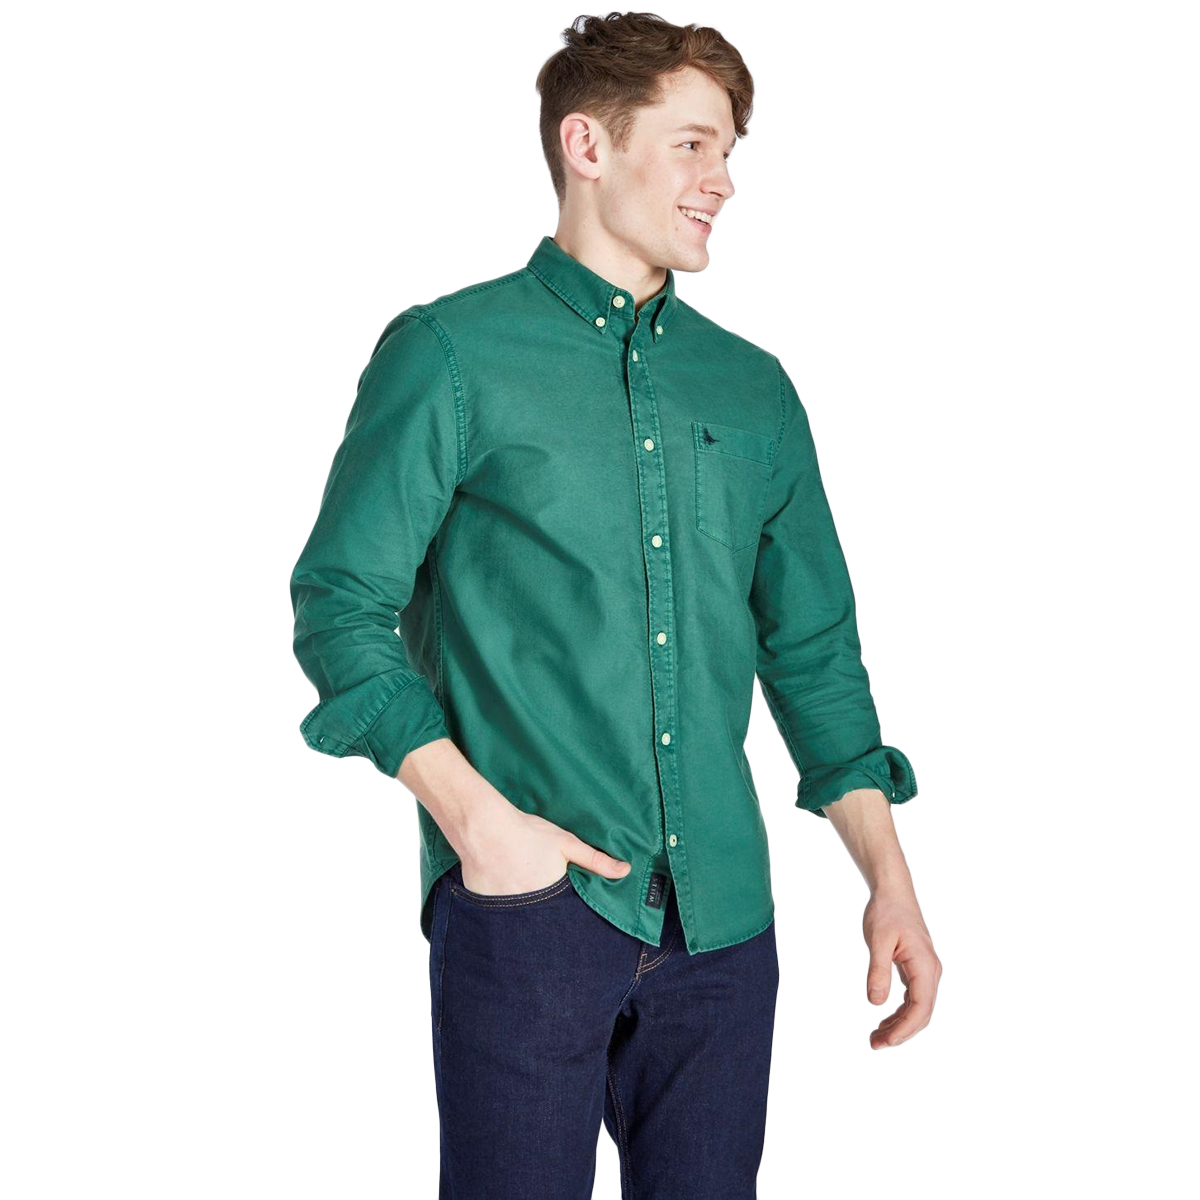 Jack Wills Men's Atley Oxford Garment Dye Shirt - Green, M